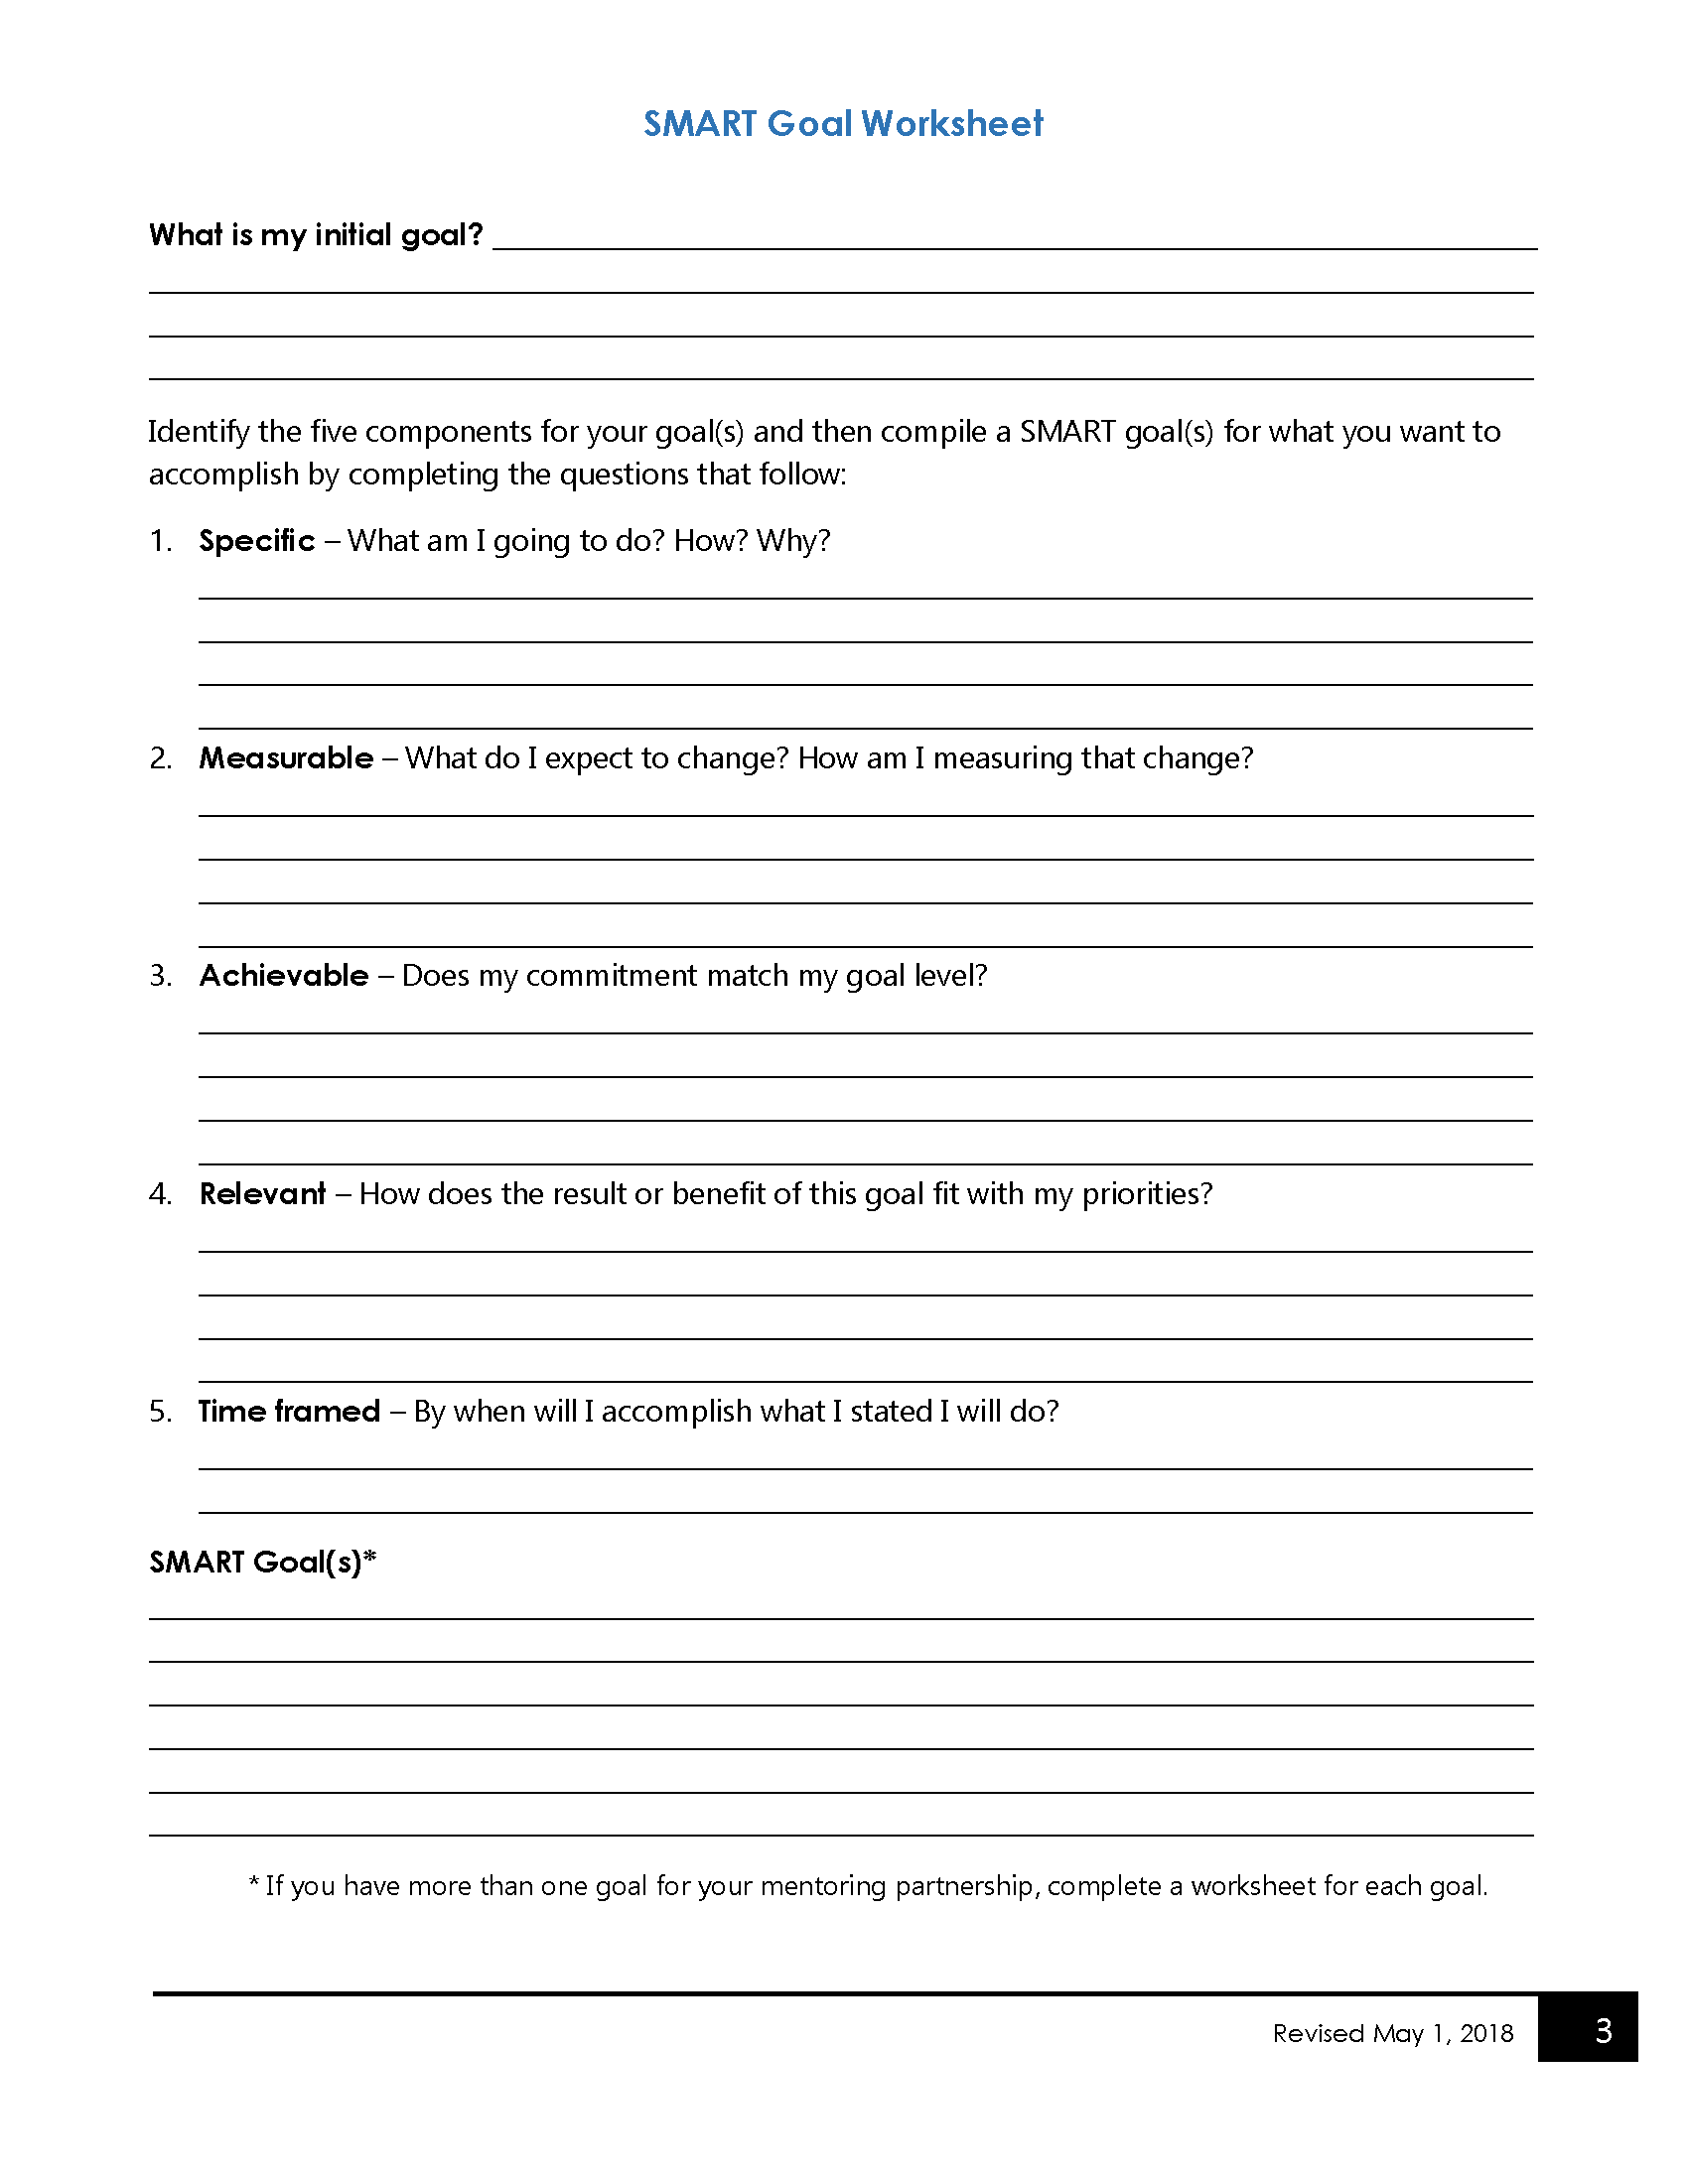 Worksheet For Youth Mentoring